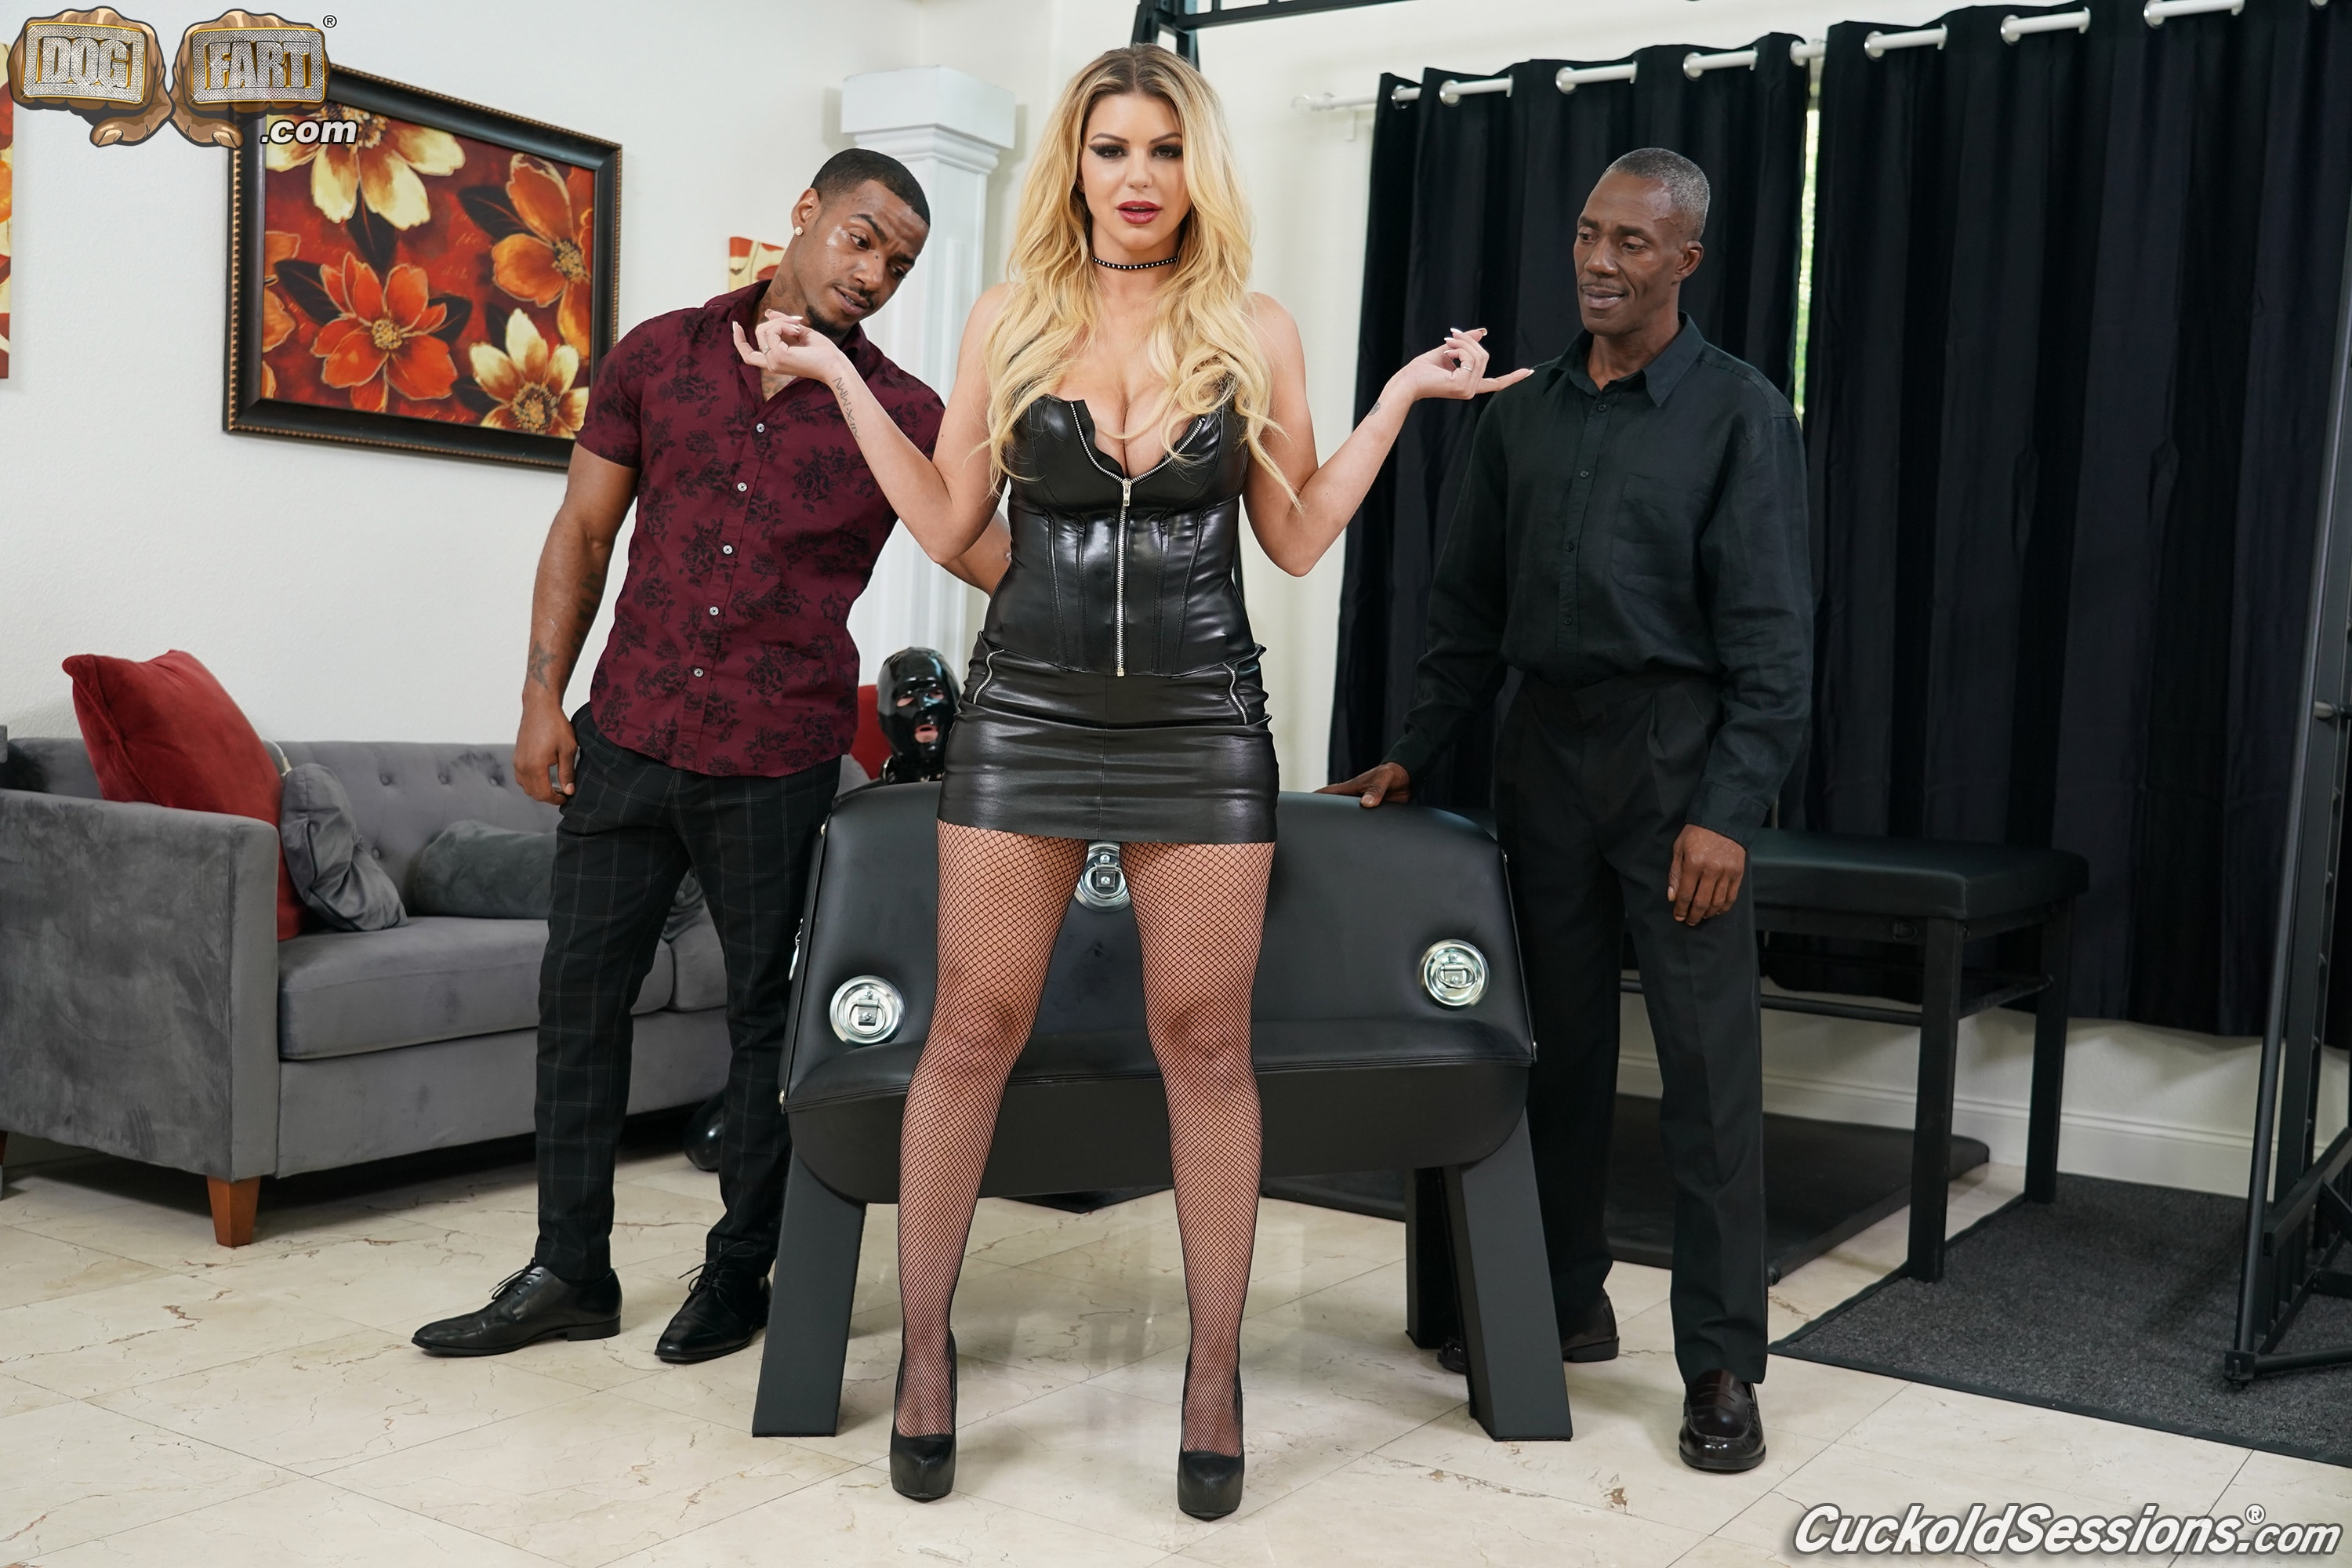 Dogfart '- Cuckold Sessions - Scene 4' starring Brooklyn Chase (Photo 10)